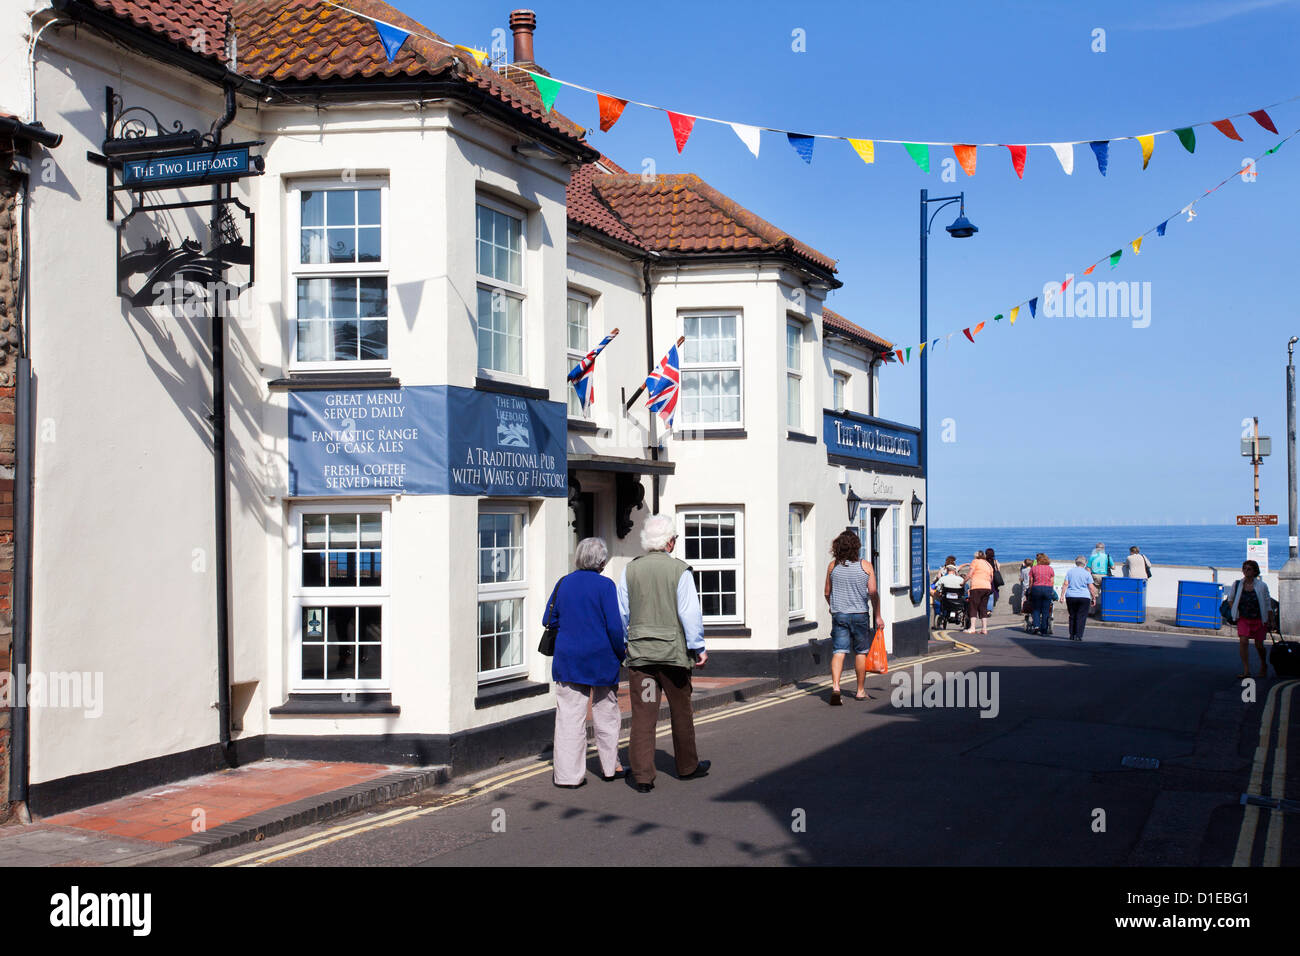 The Two Lifeboats Pub on the Seafront at Sheringham, Norfolk, England, United Kingdom, Europe - Stock Image